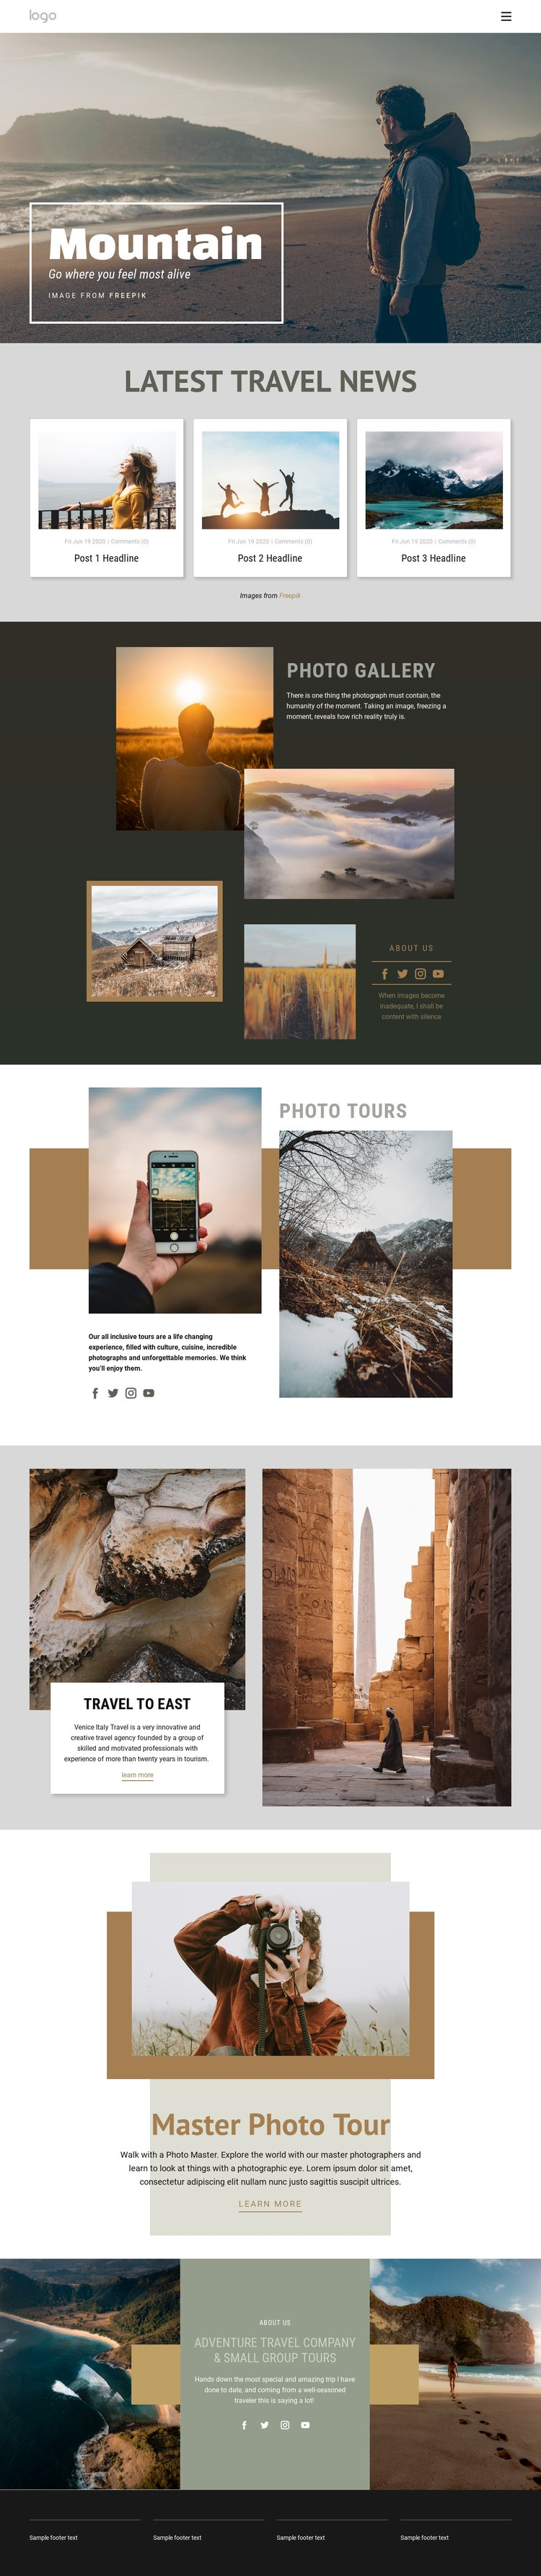 Mountain advanture travel WordPress Template